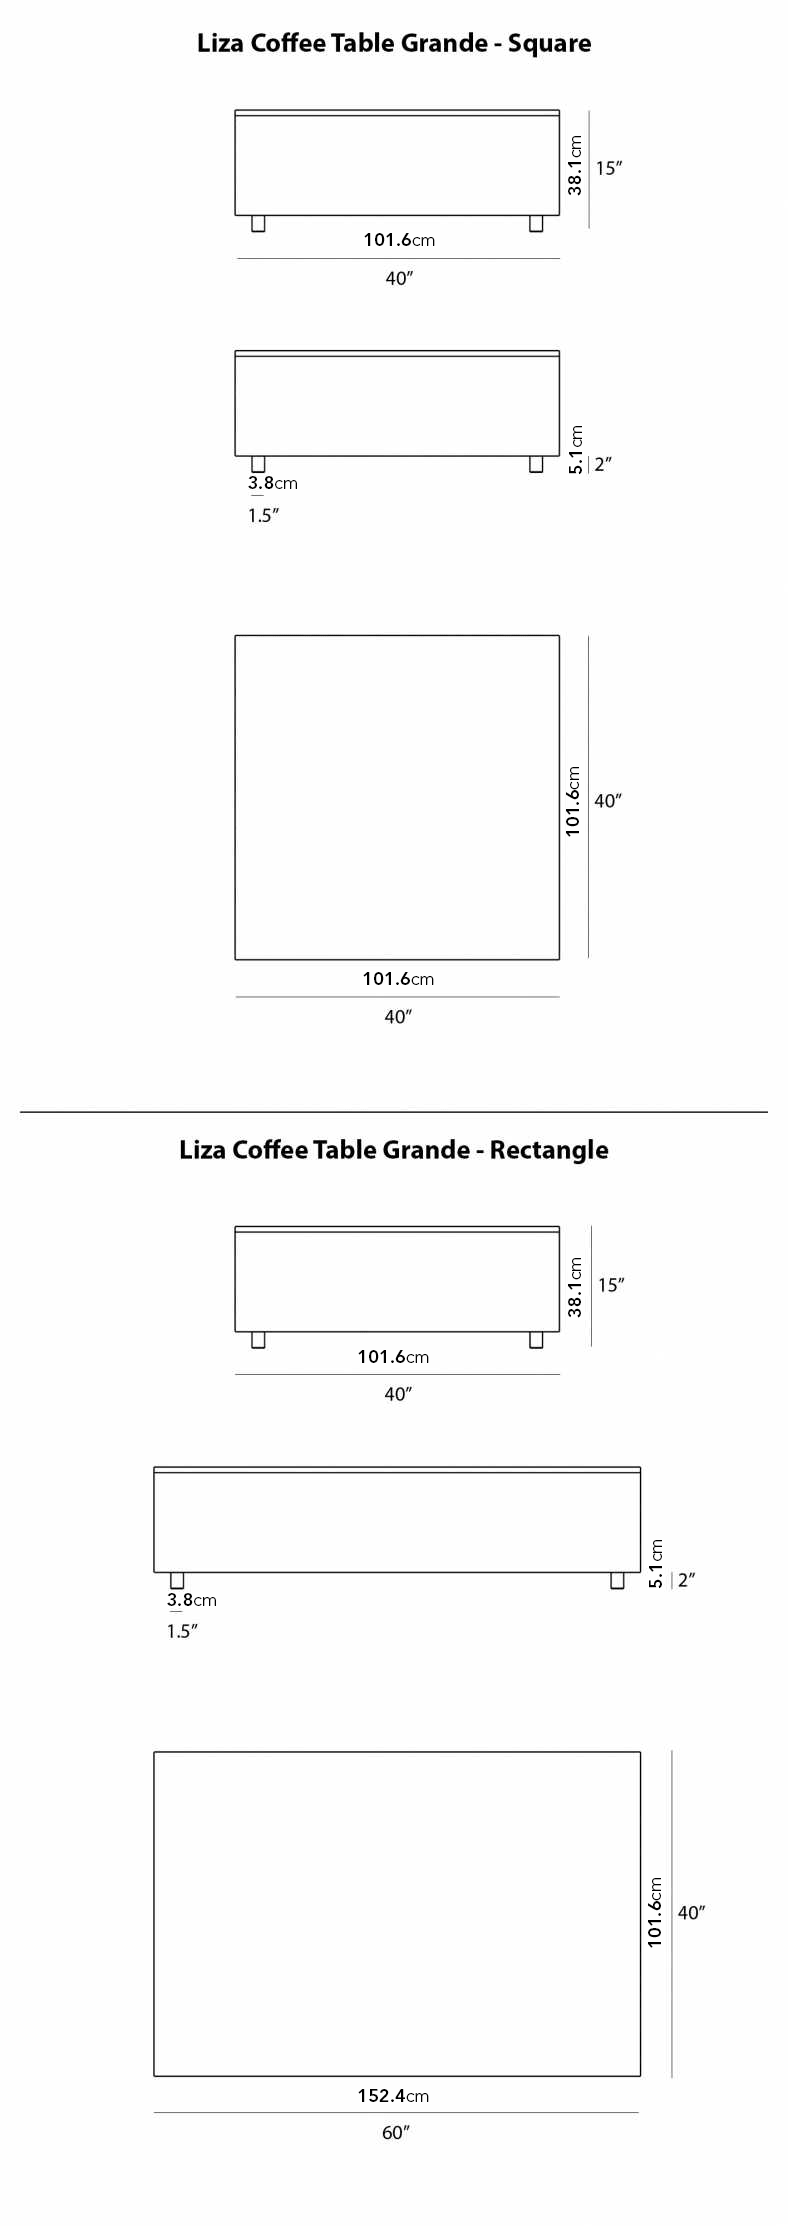 Dimensions for Liza Coffee Table Grande - Marble